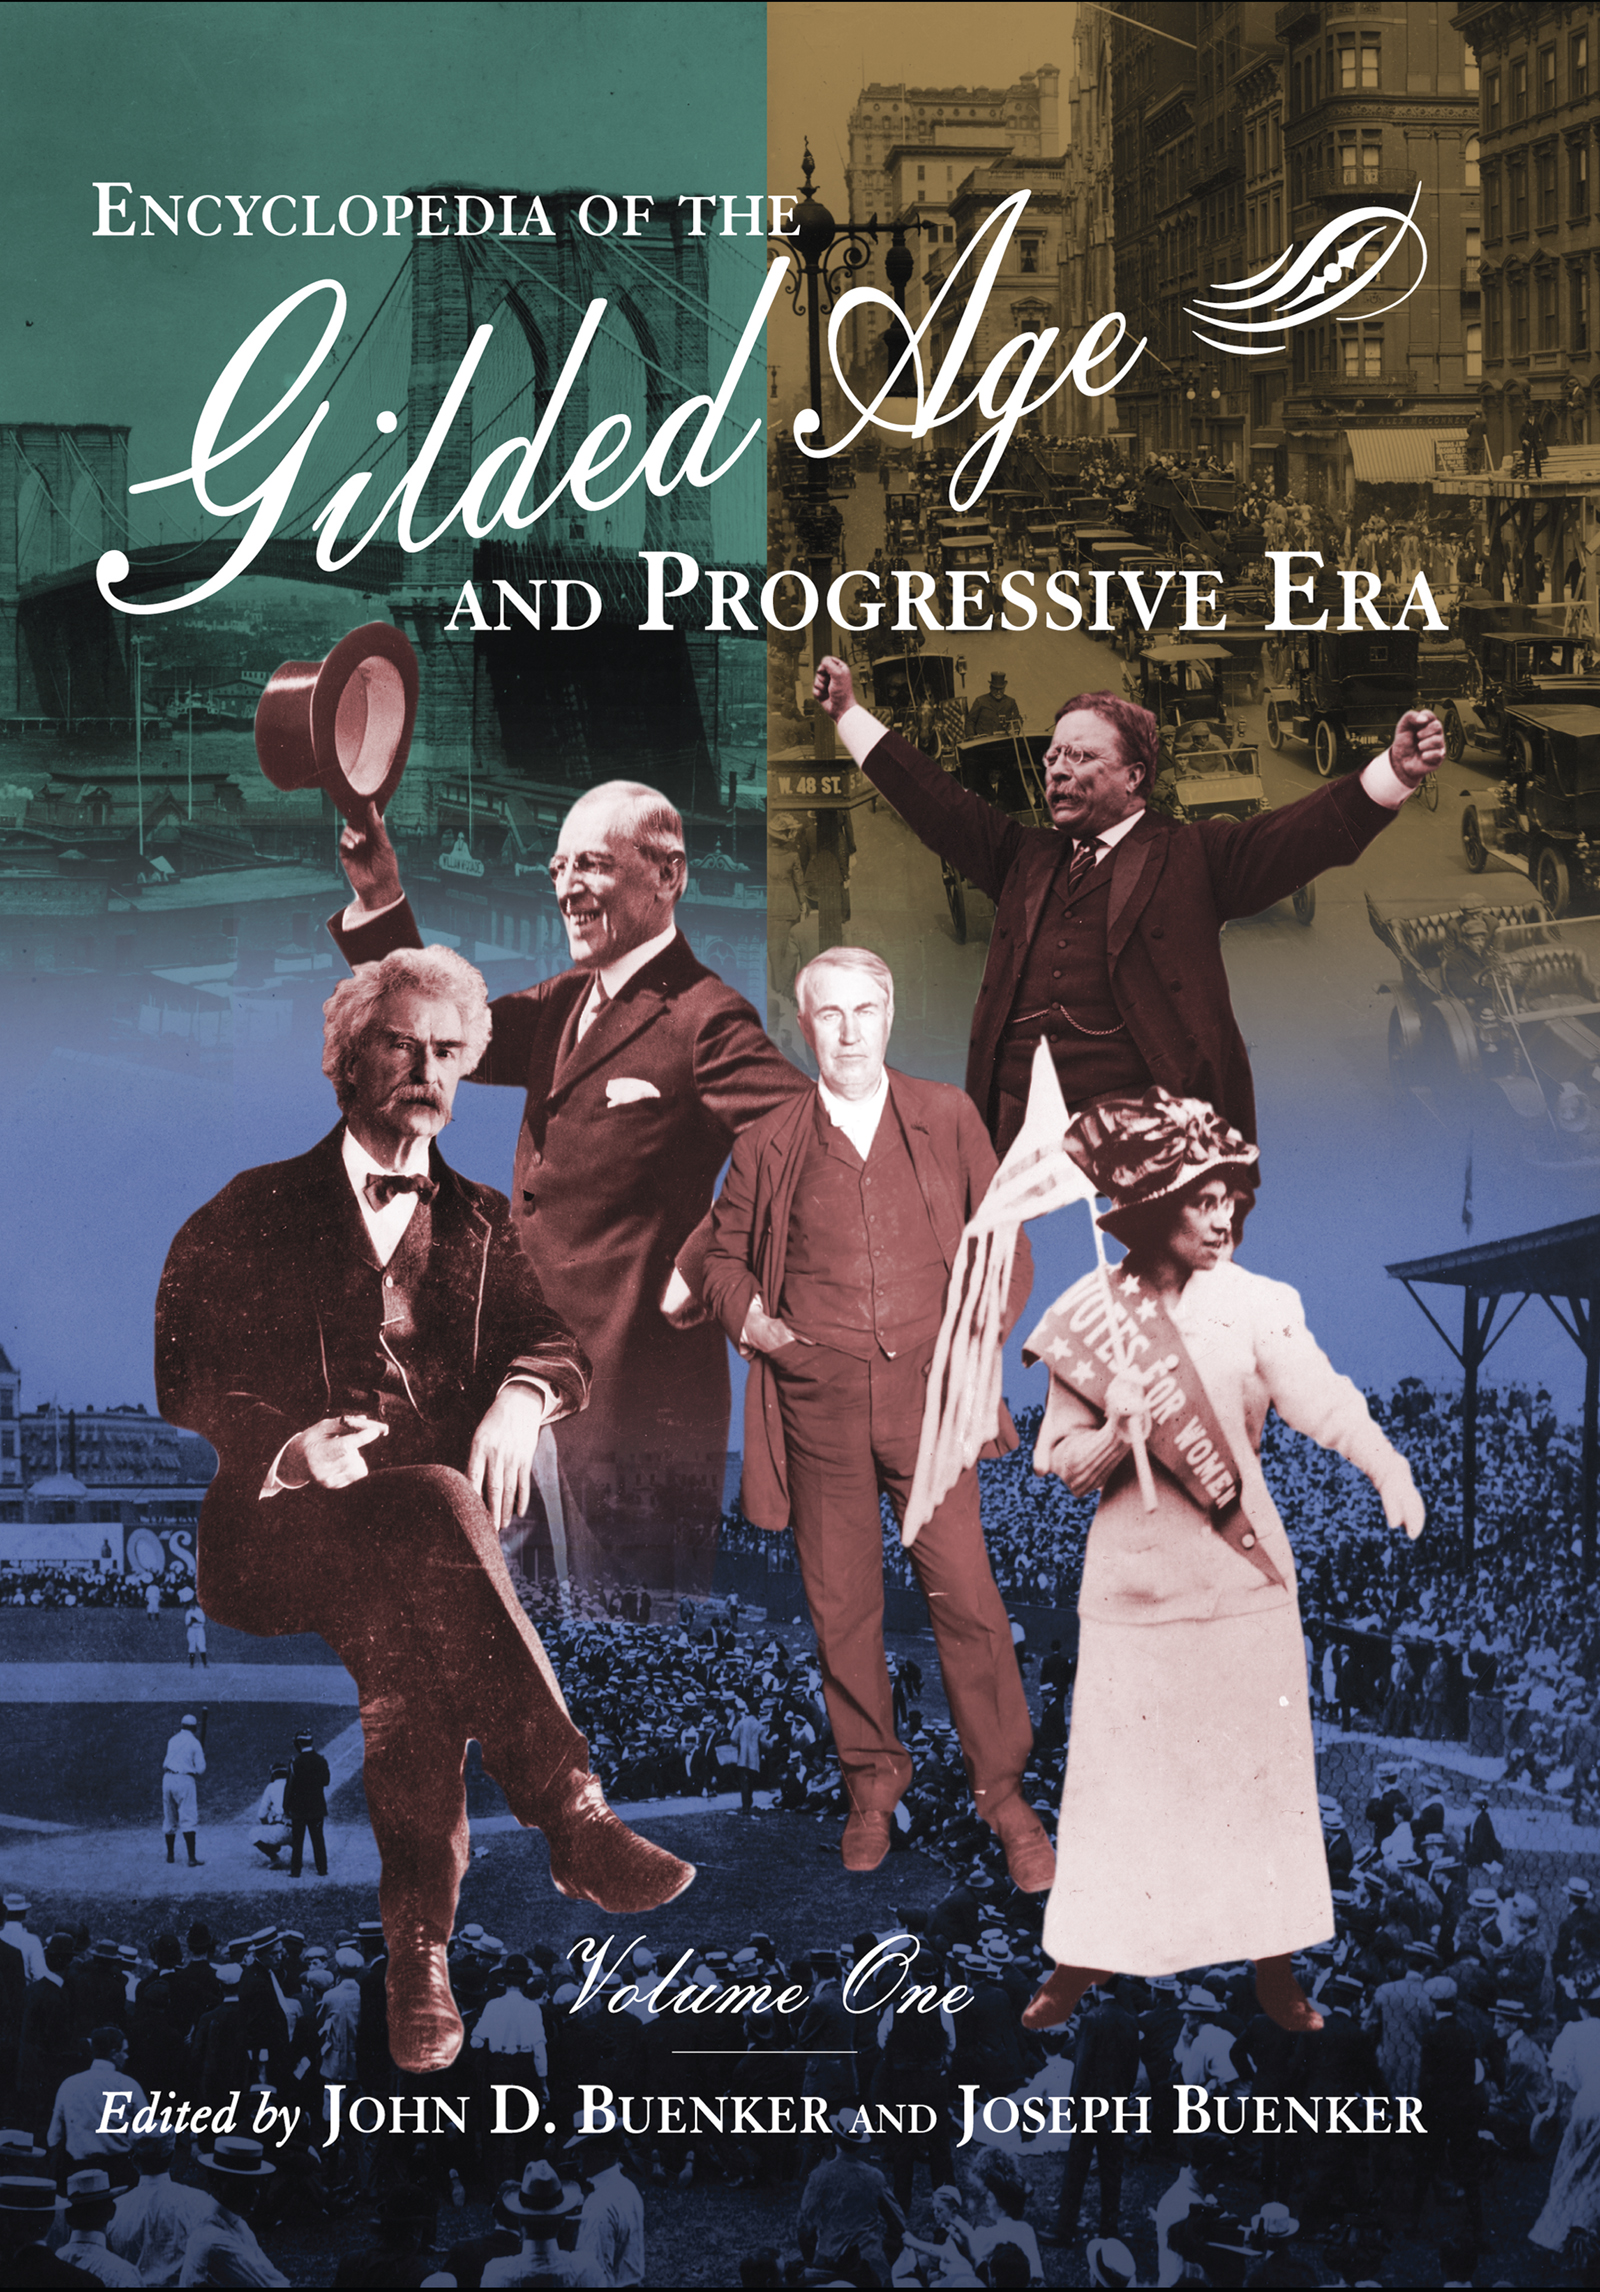 Encyclopedia of the Gilded Age and Progressive Era